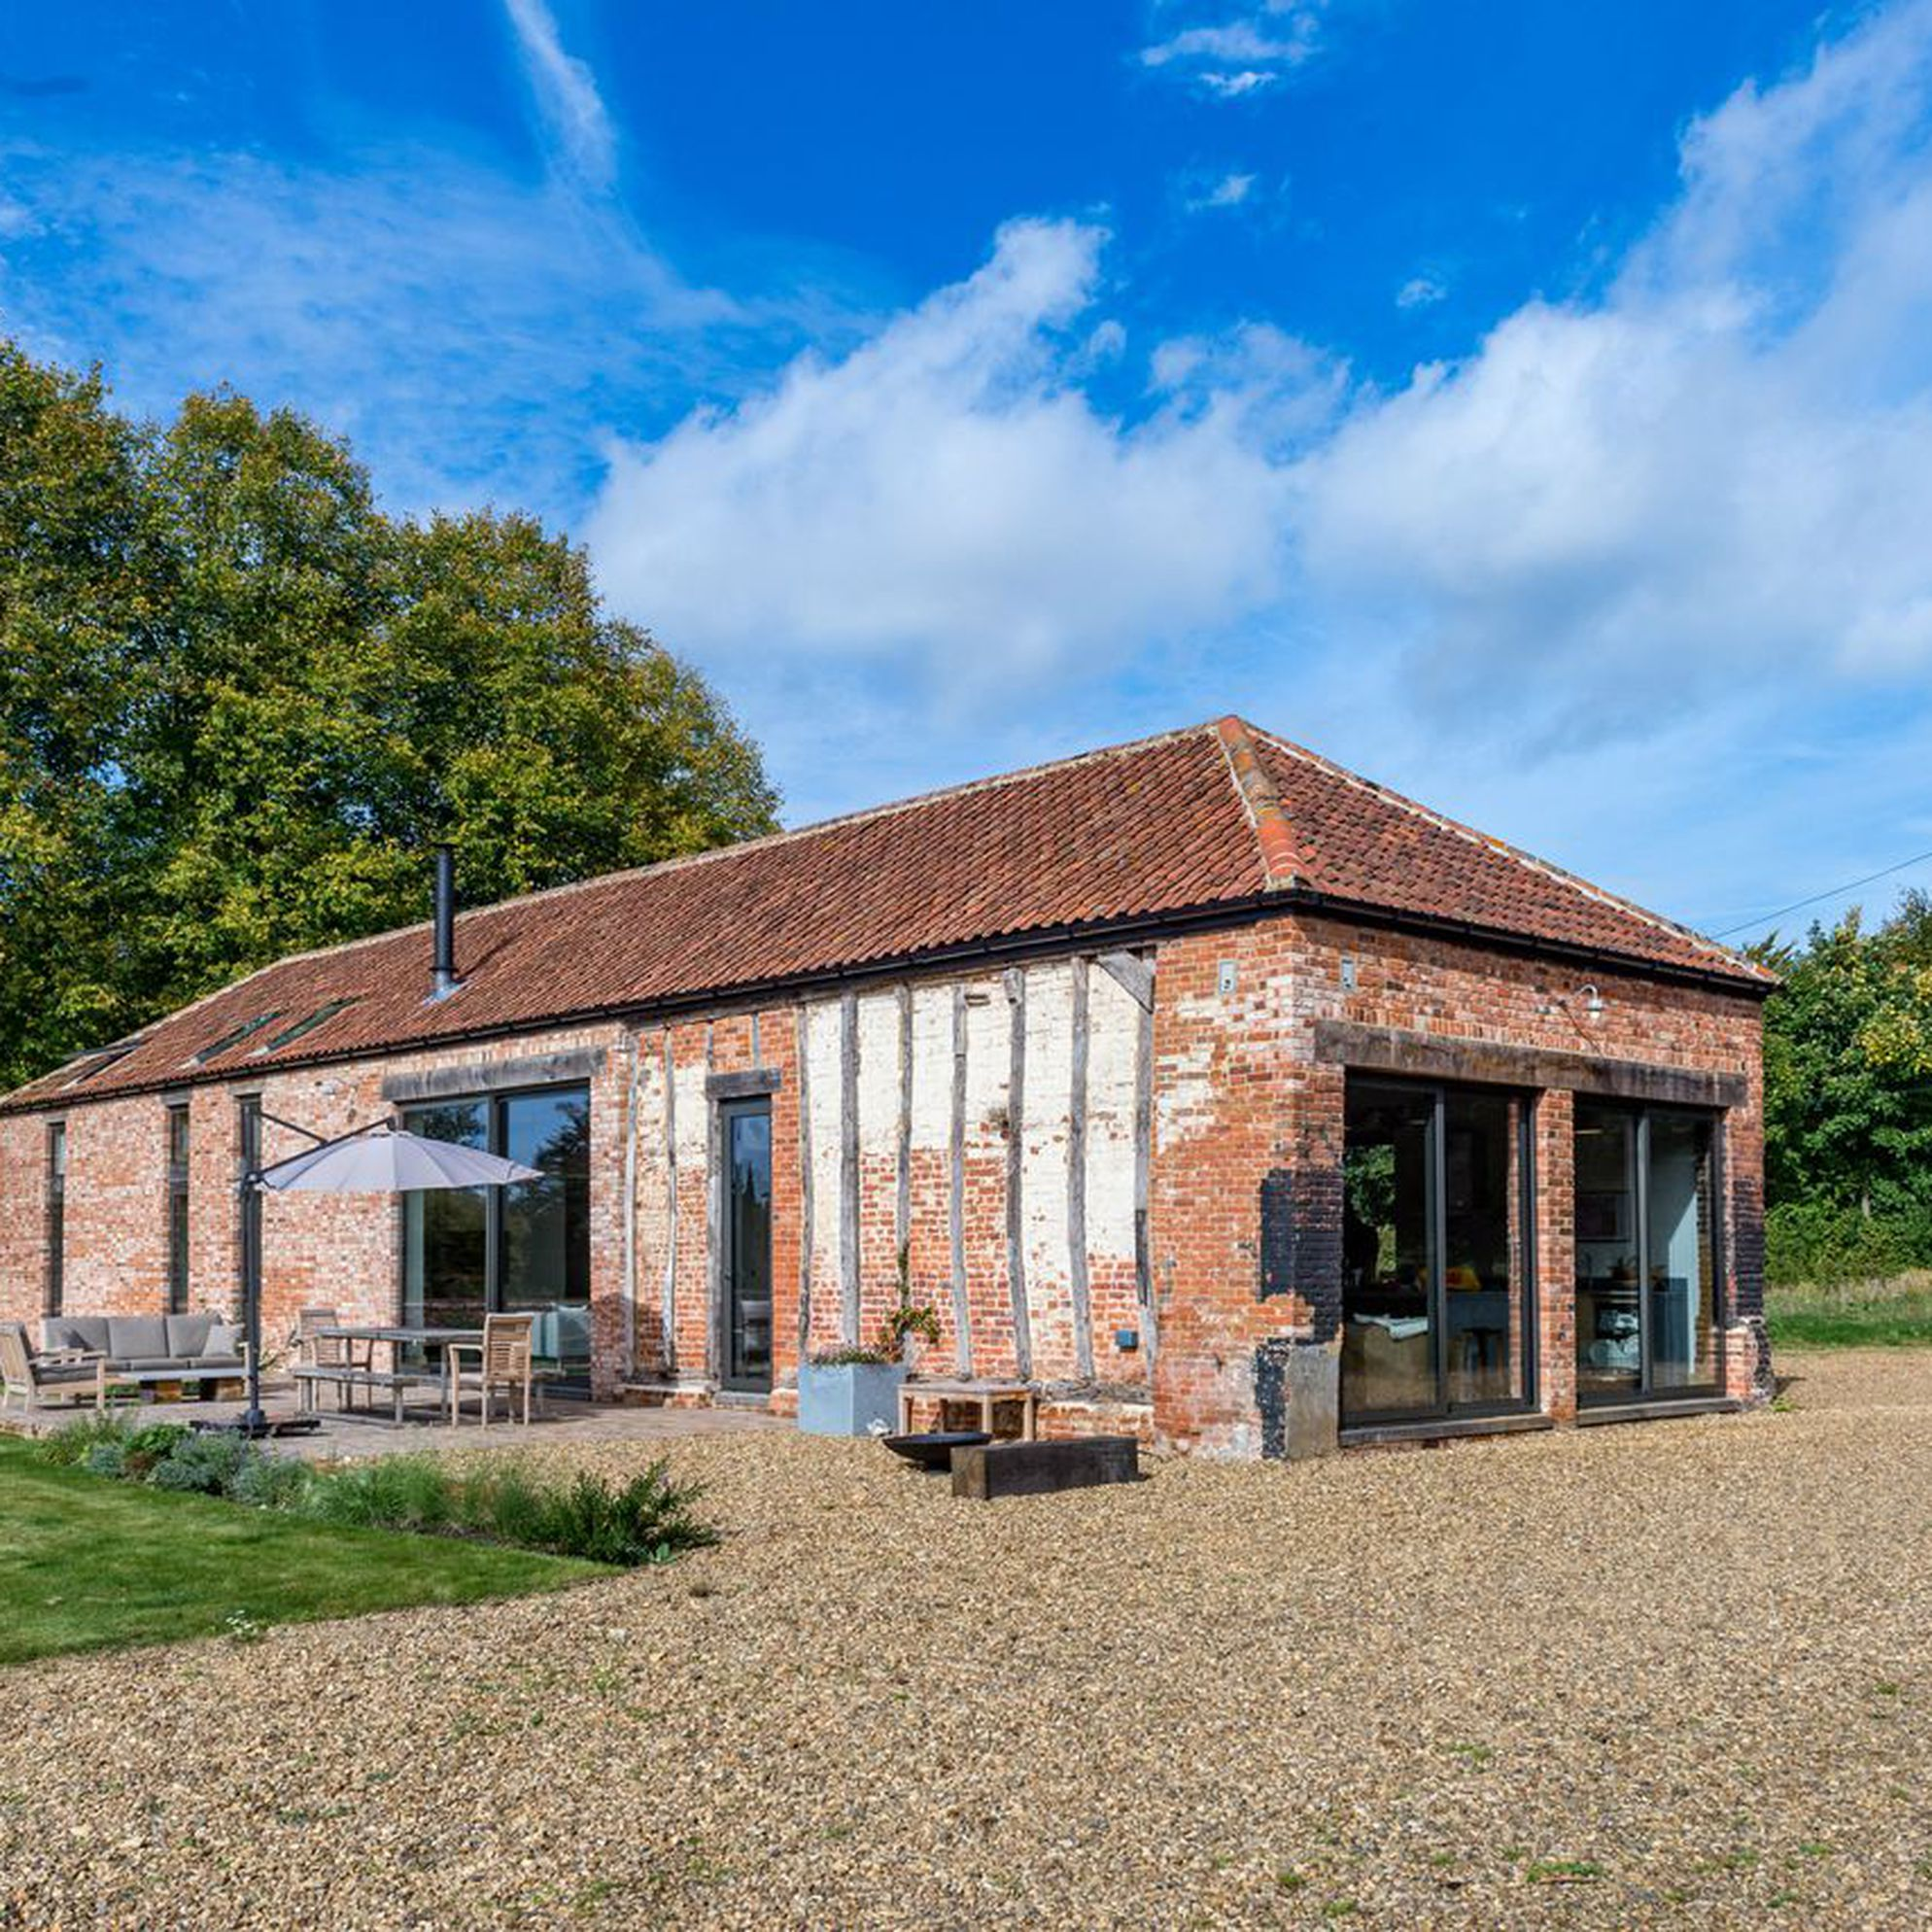 Large holiday cottages in Norfolk